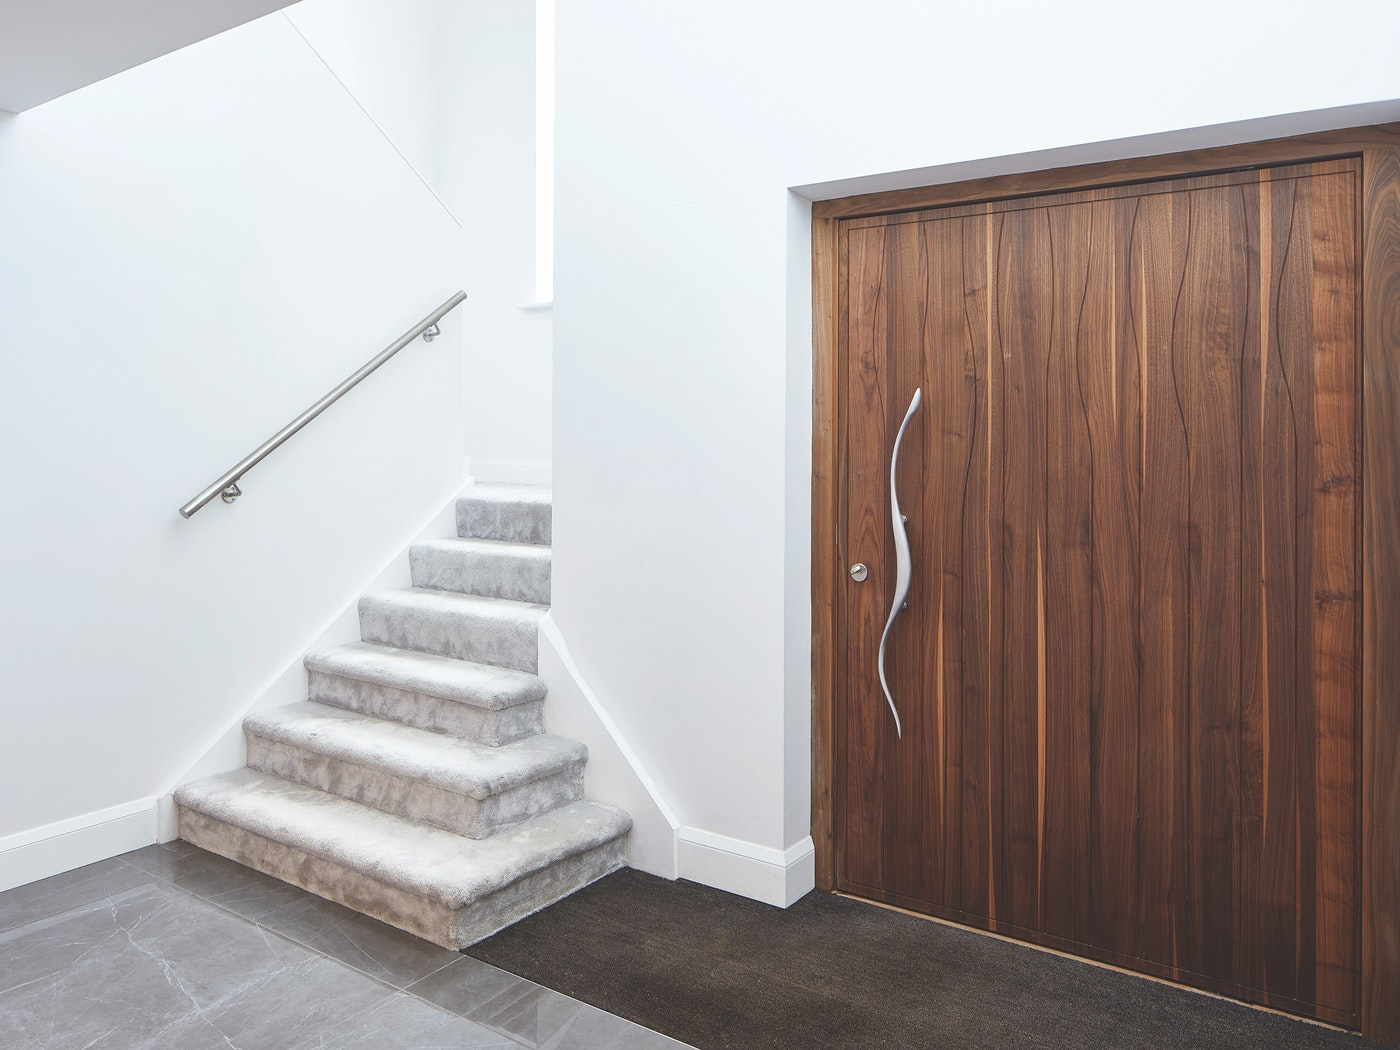 Choose a statement handle, this one follows the wave pattern on the door